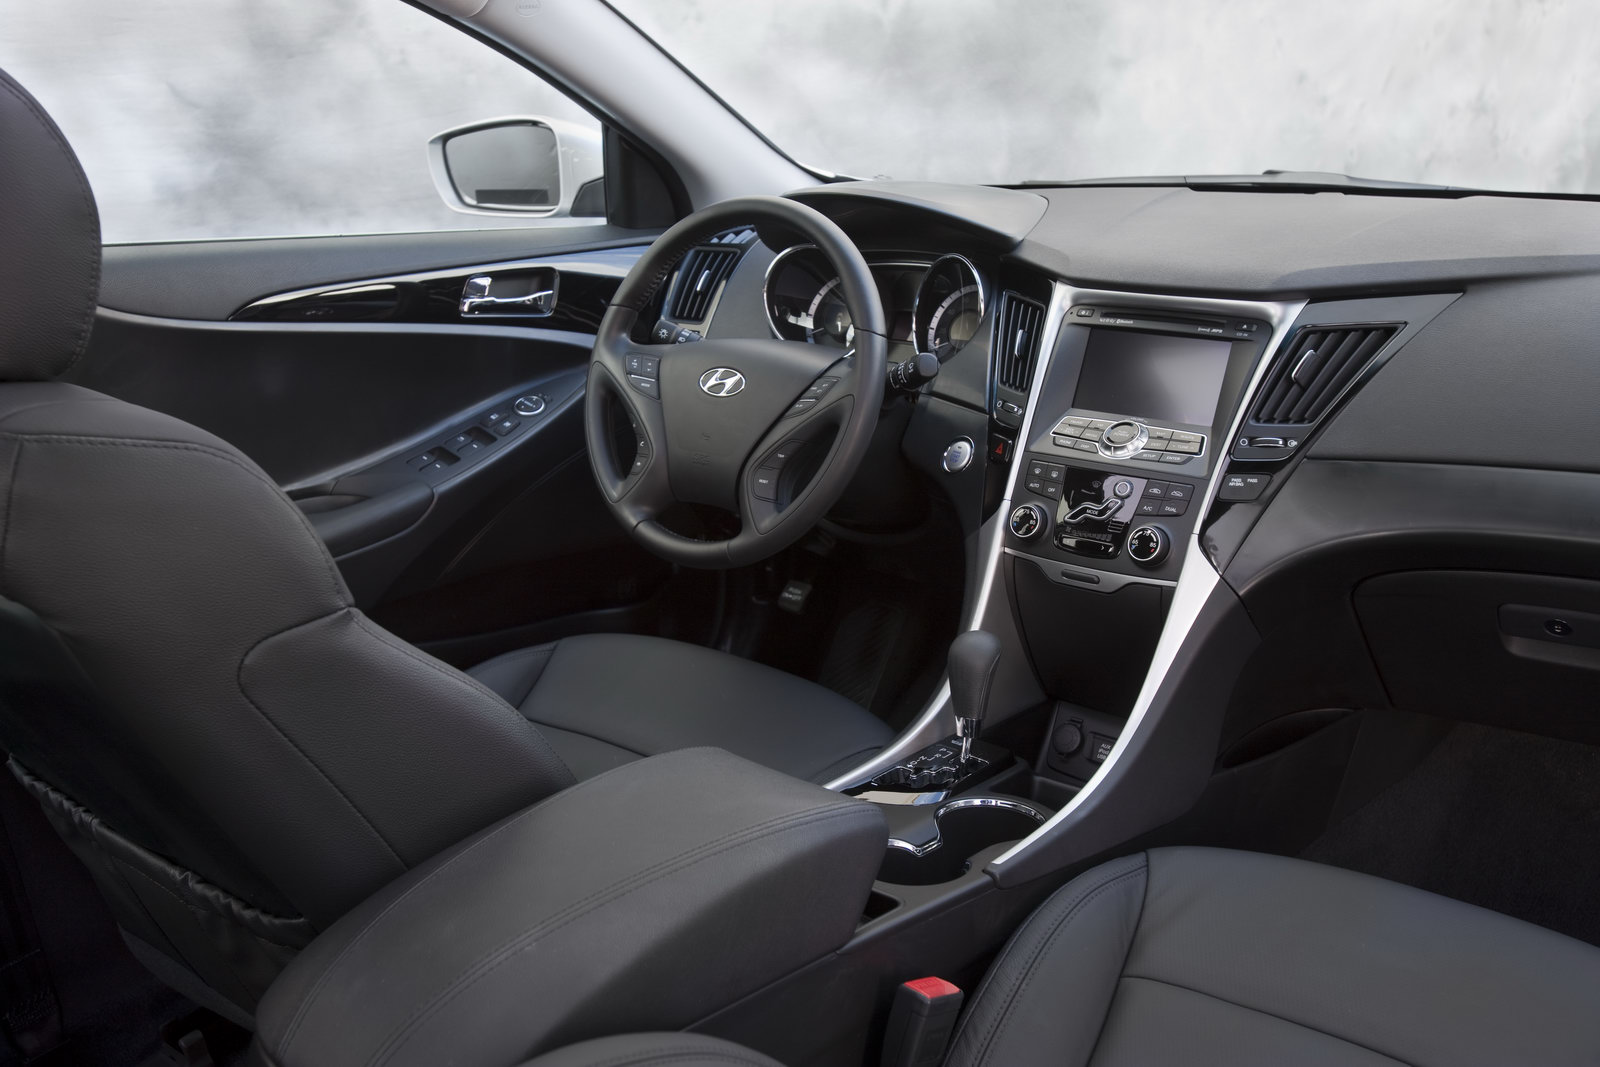 Interior Shot Of 2011 Hyundai Sonata